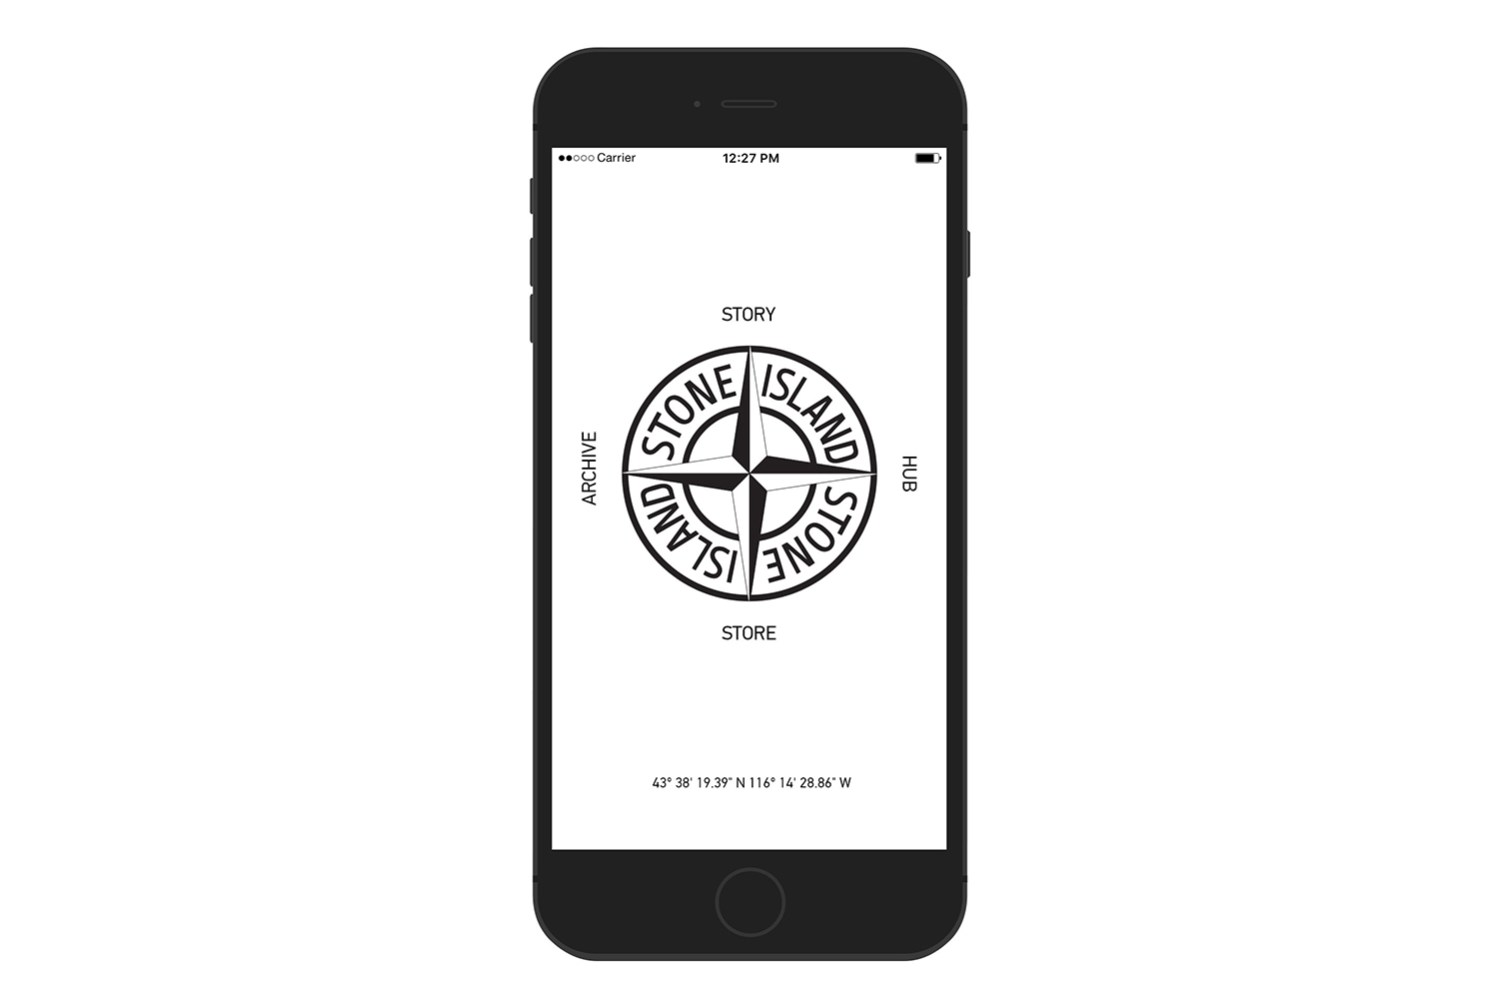 Stone Island Launches Its First App